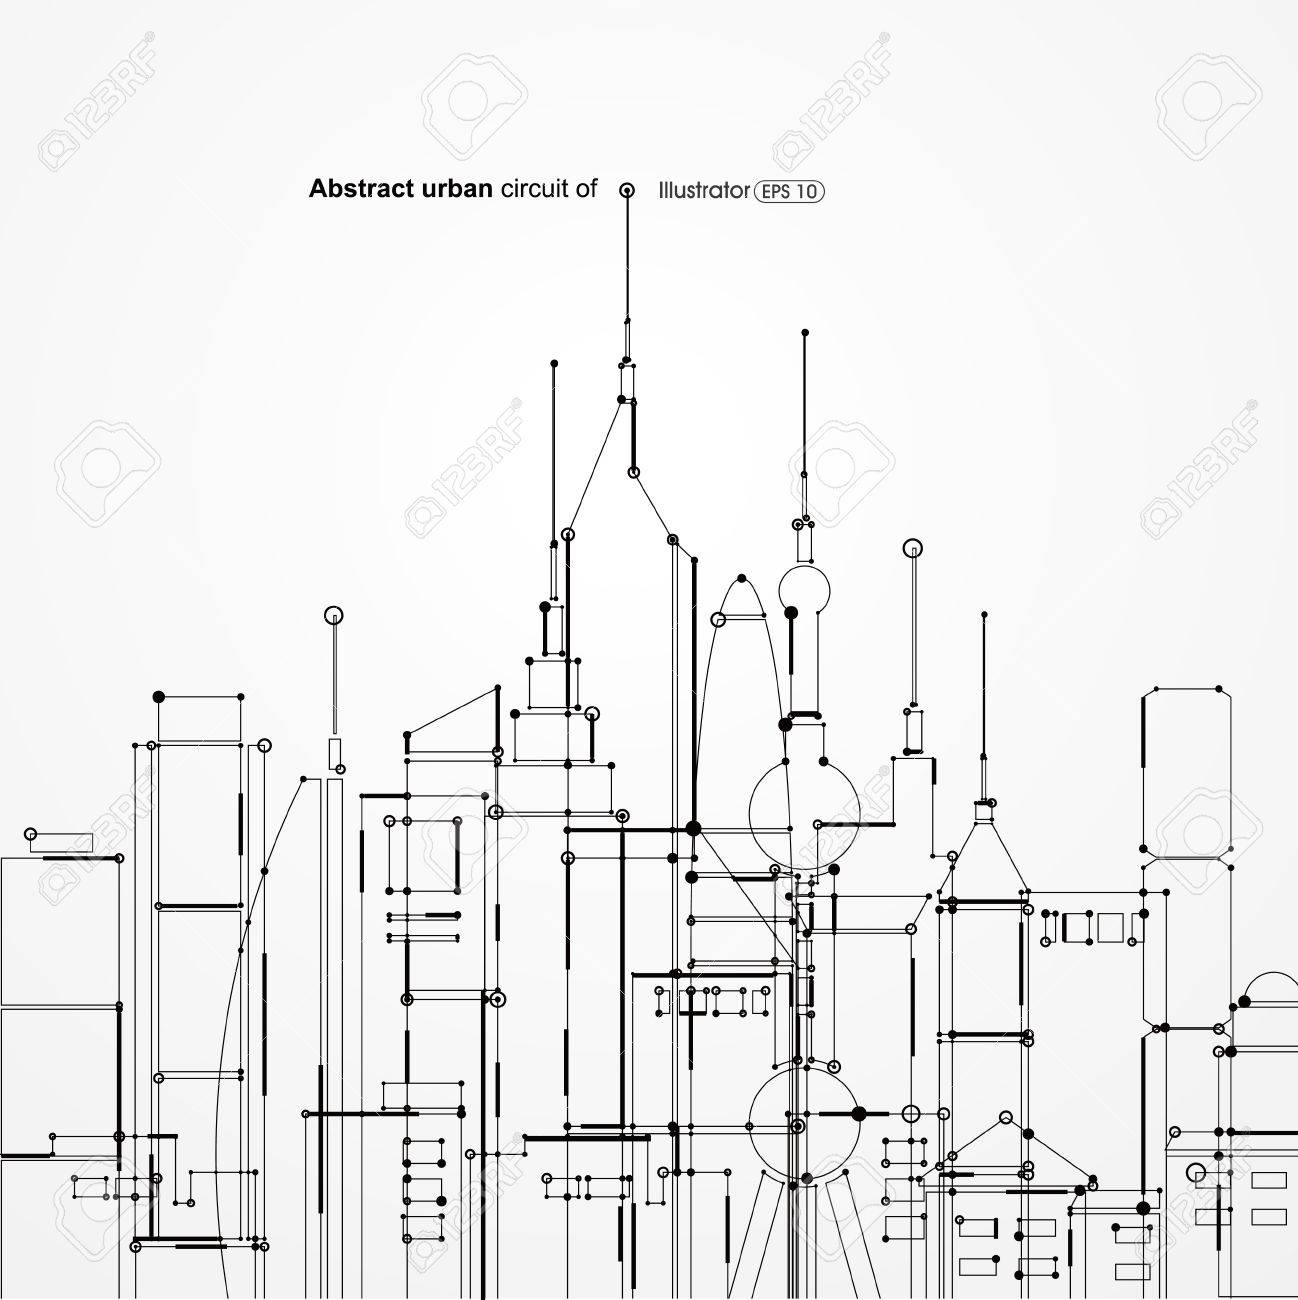 Abstract urban circuit of - 53259012